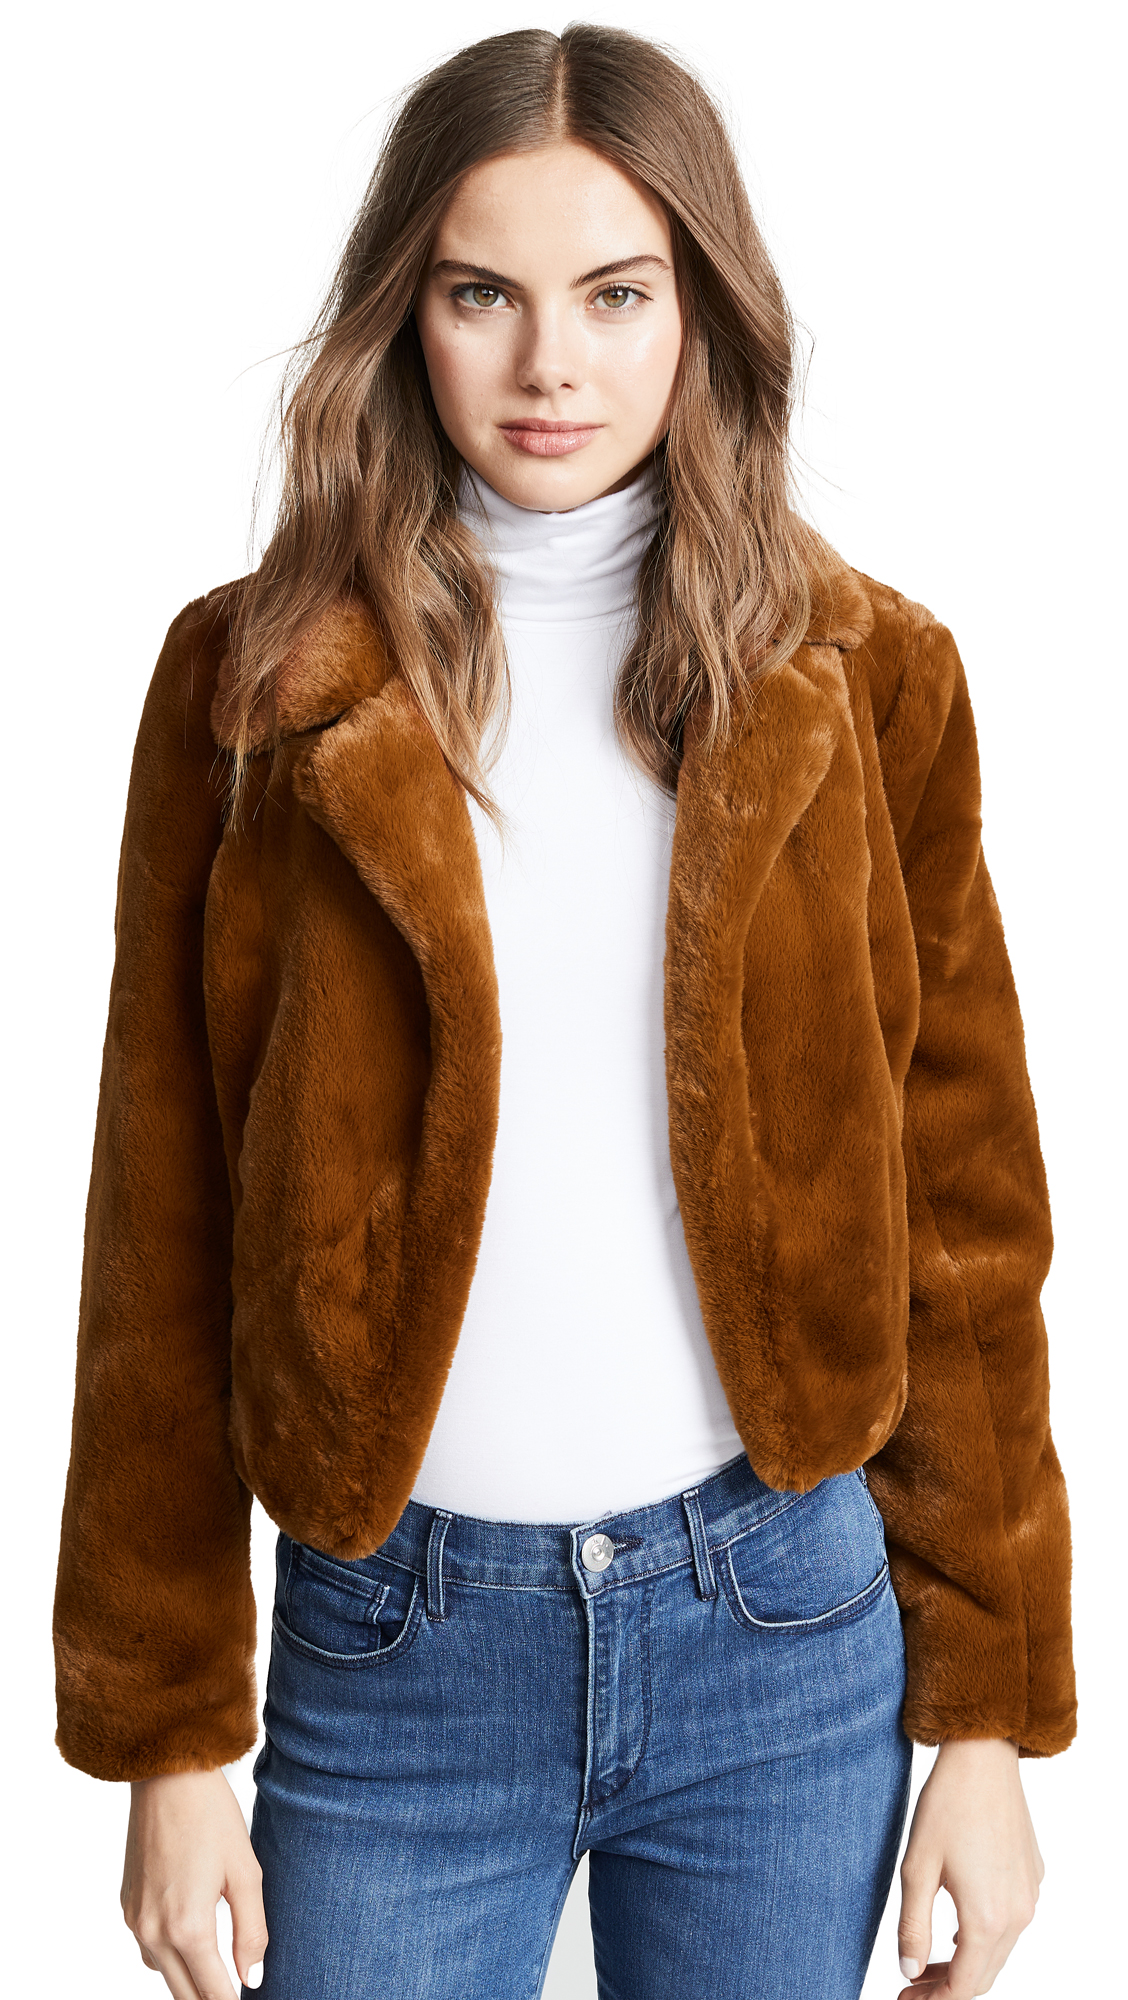 BLANK DENIM Cropped Faux Fur Jacket in Milk Chocolate